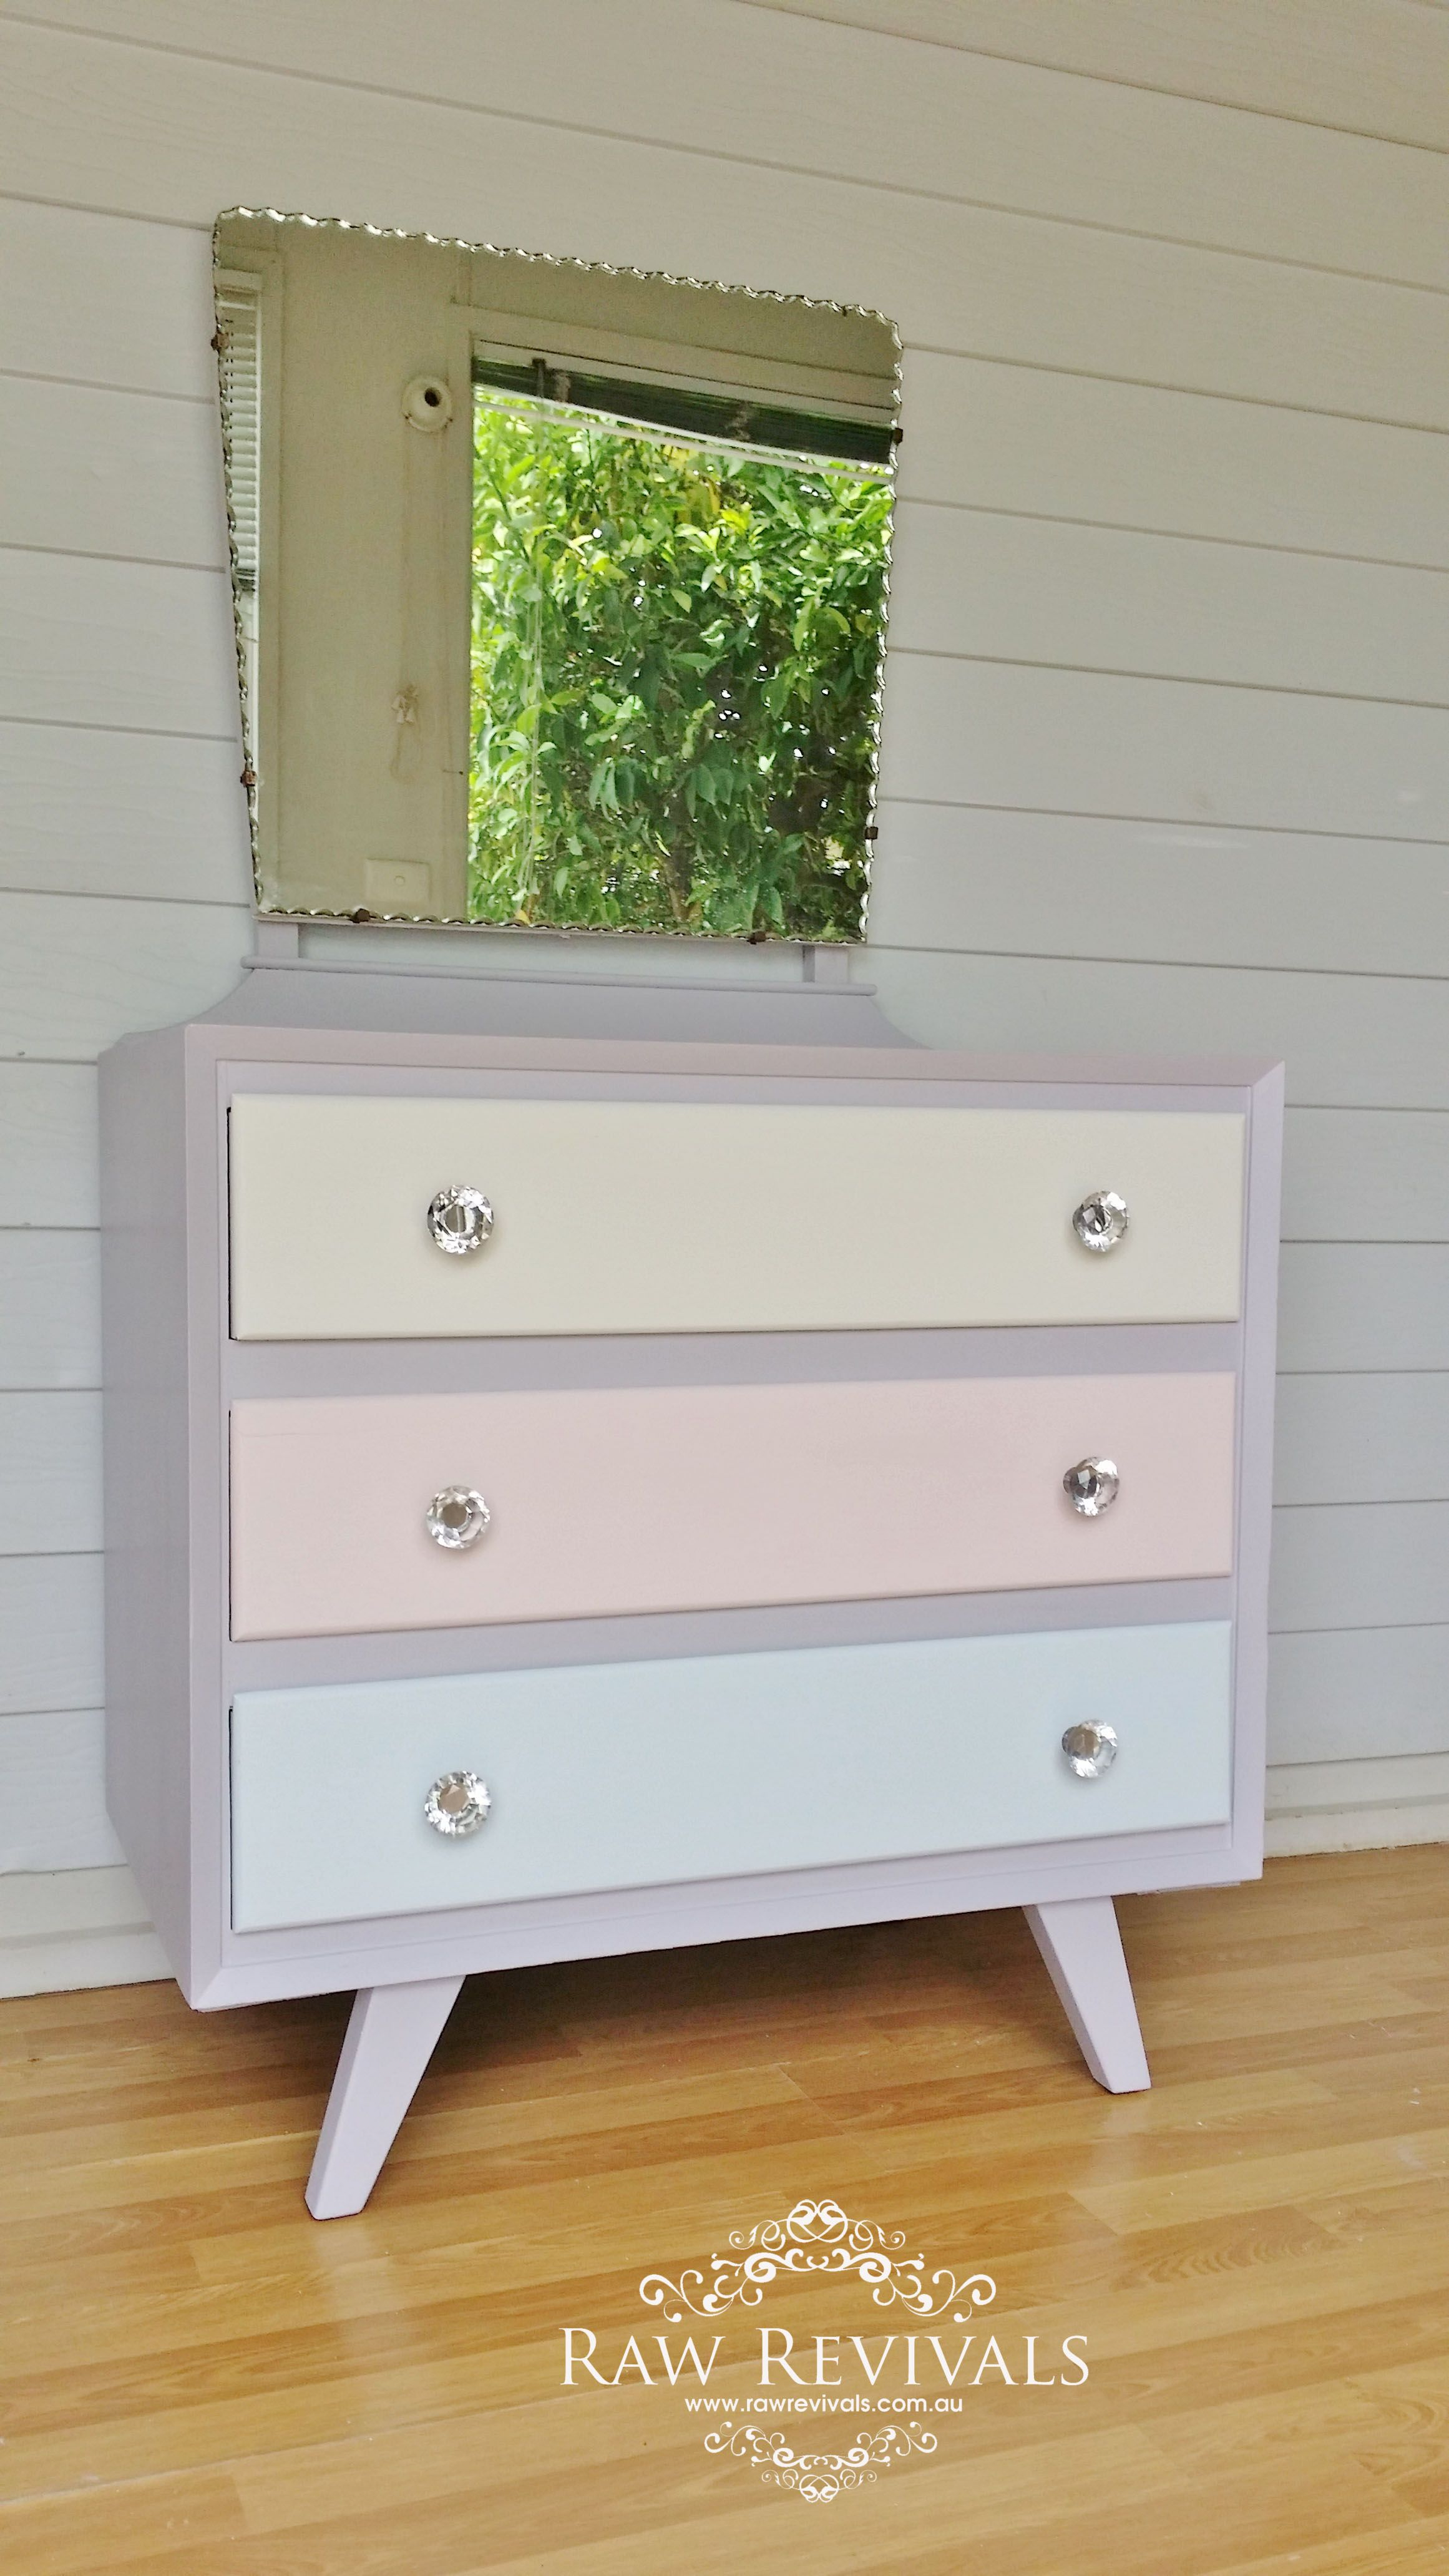 Furniture Diy Upcycled Pastel Retro Dressing Table Vanity